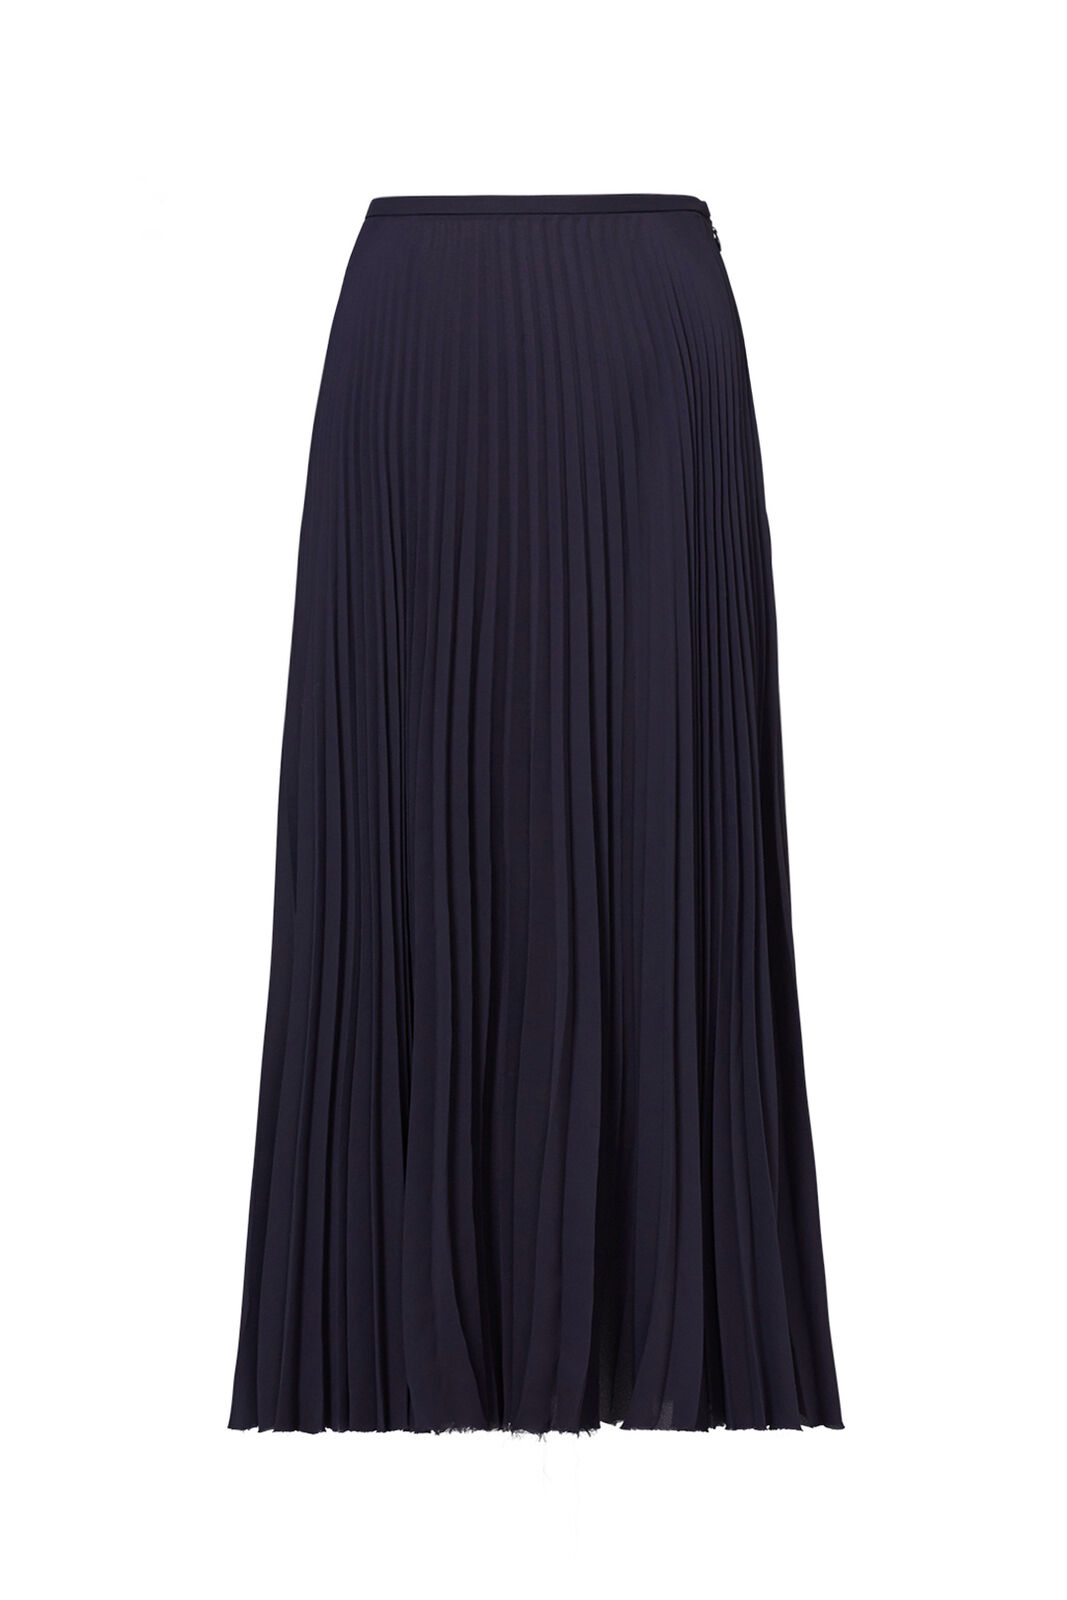 a68a2797b Details about Vince Navy Blue Women's Size 2 Pleated Seamed A-Line Solid  Skirt $265- #736